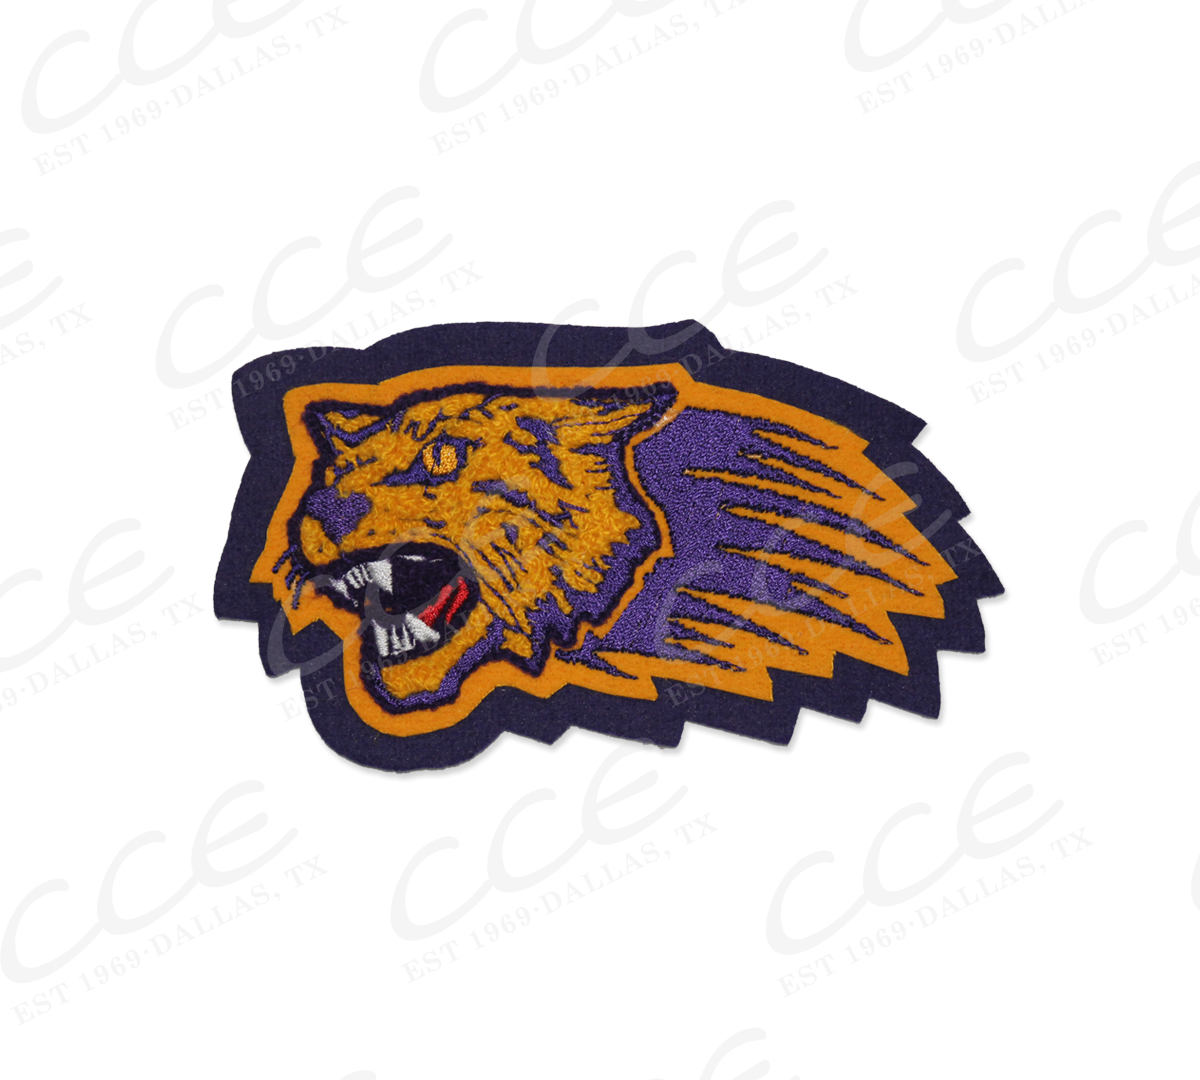 Wildcat clipart woodland. Godley hs wildcats sleeve